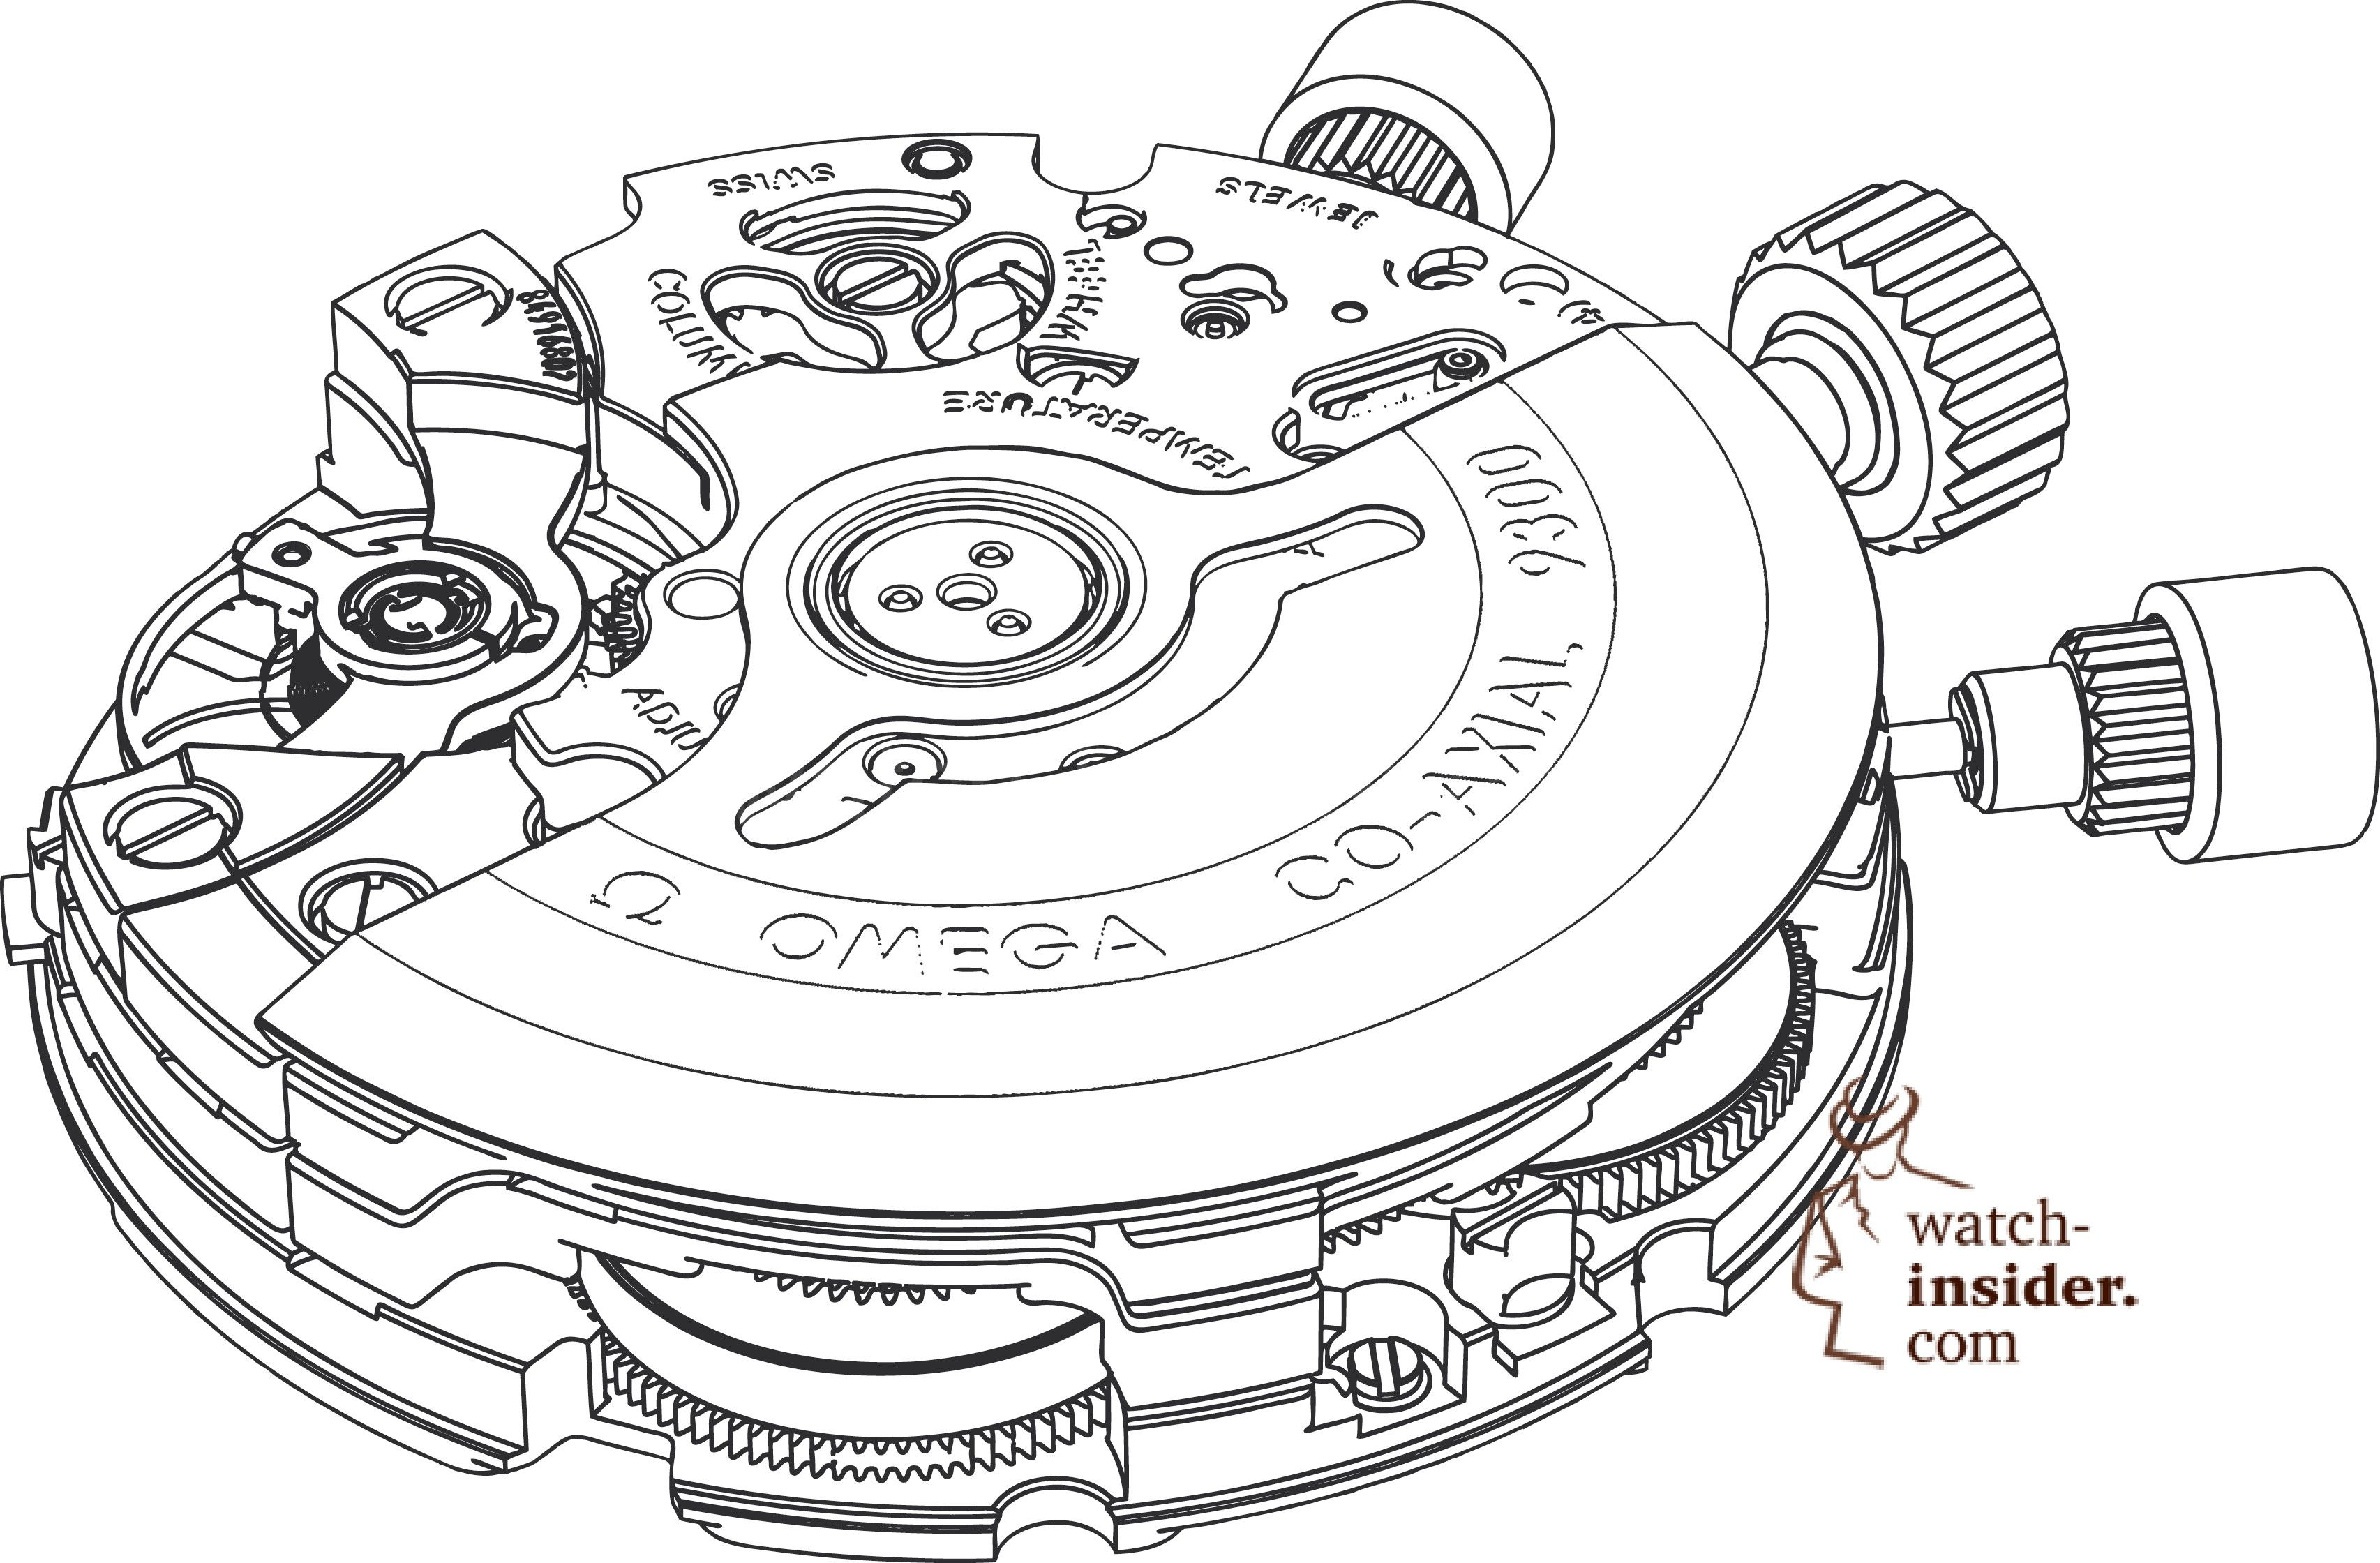 Omega Calibre Drawing With The Chronograph Mechanism